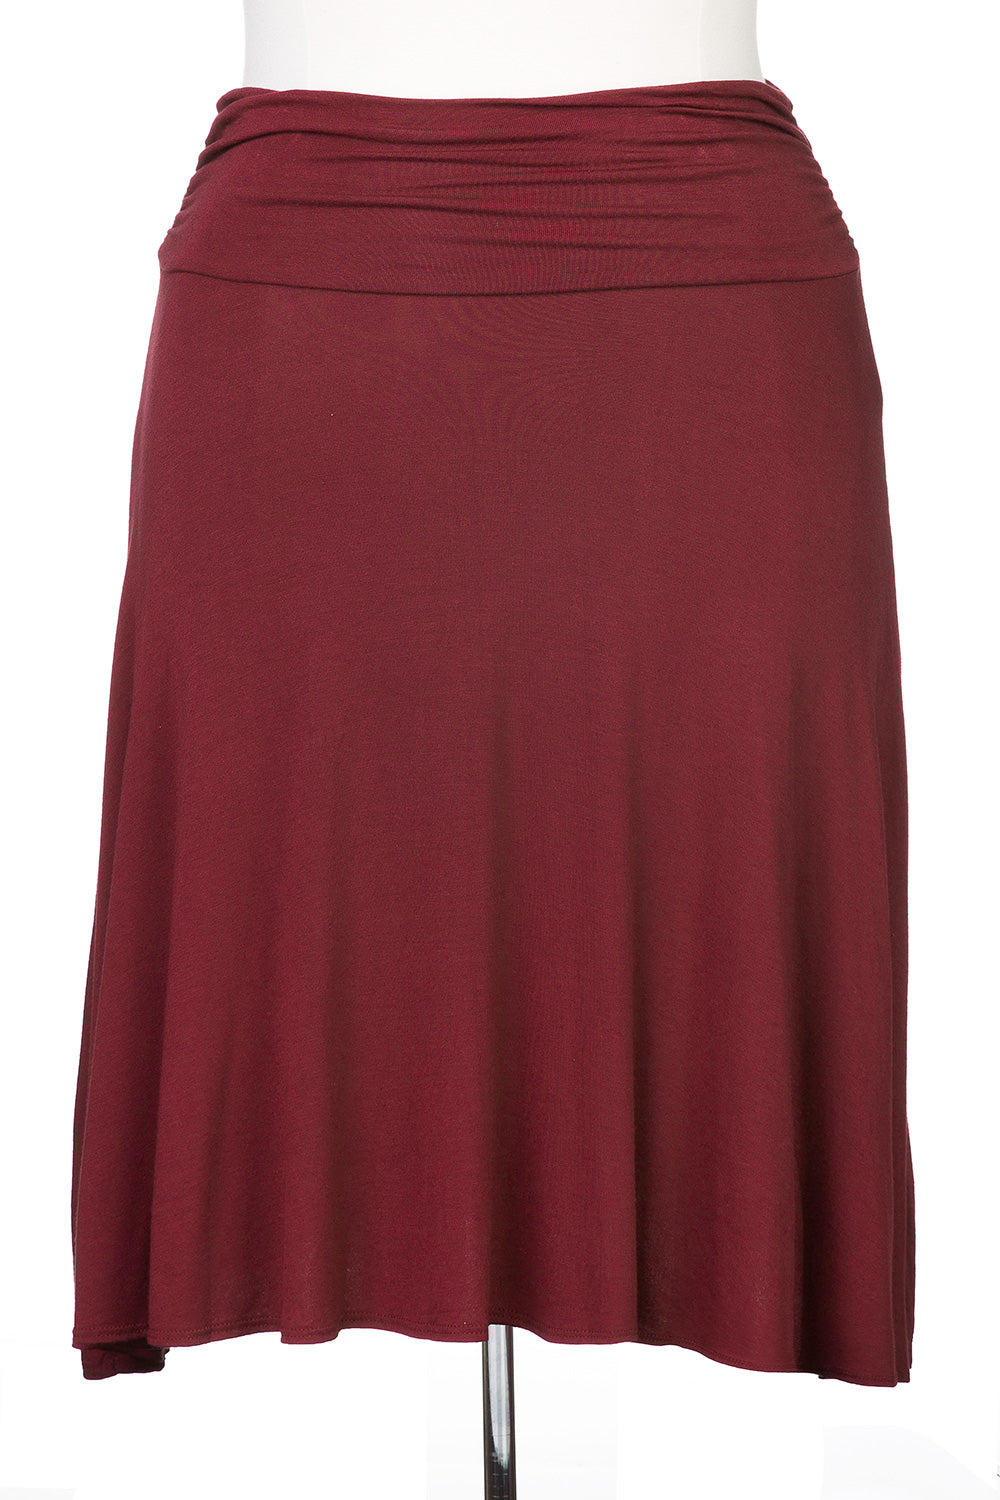 Type 2 Burgundy Drape Skirt